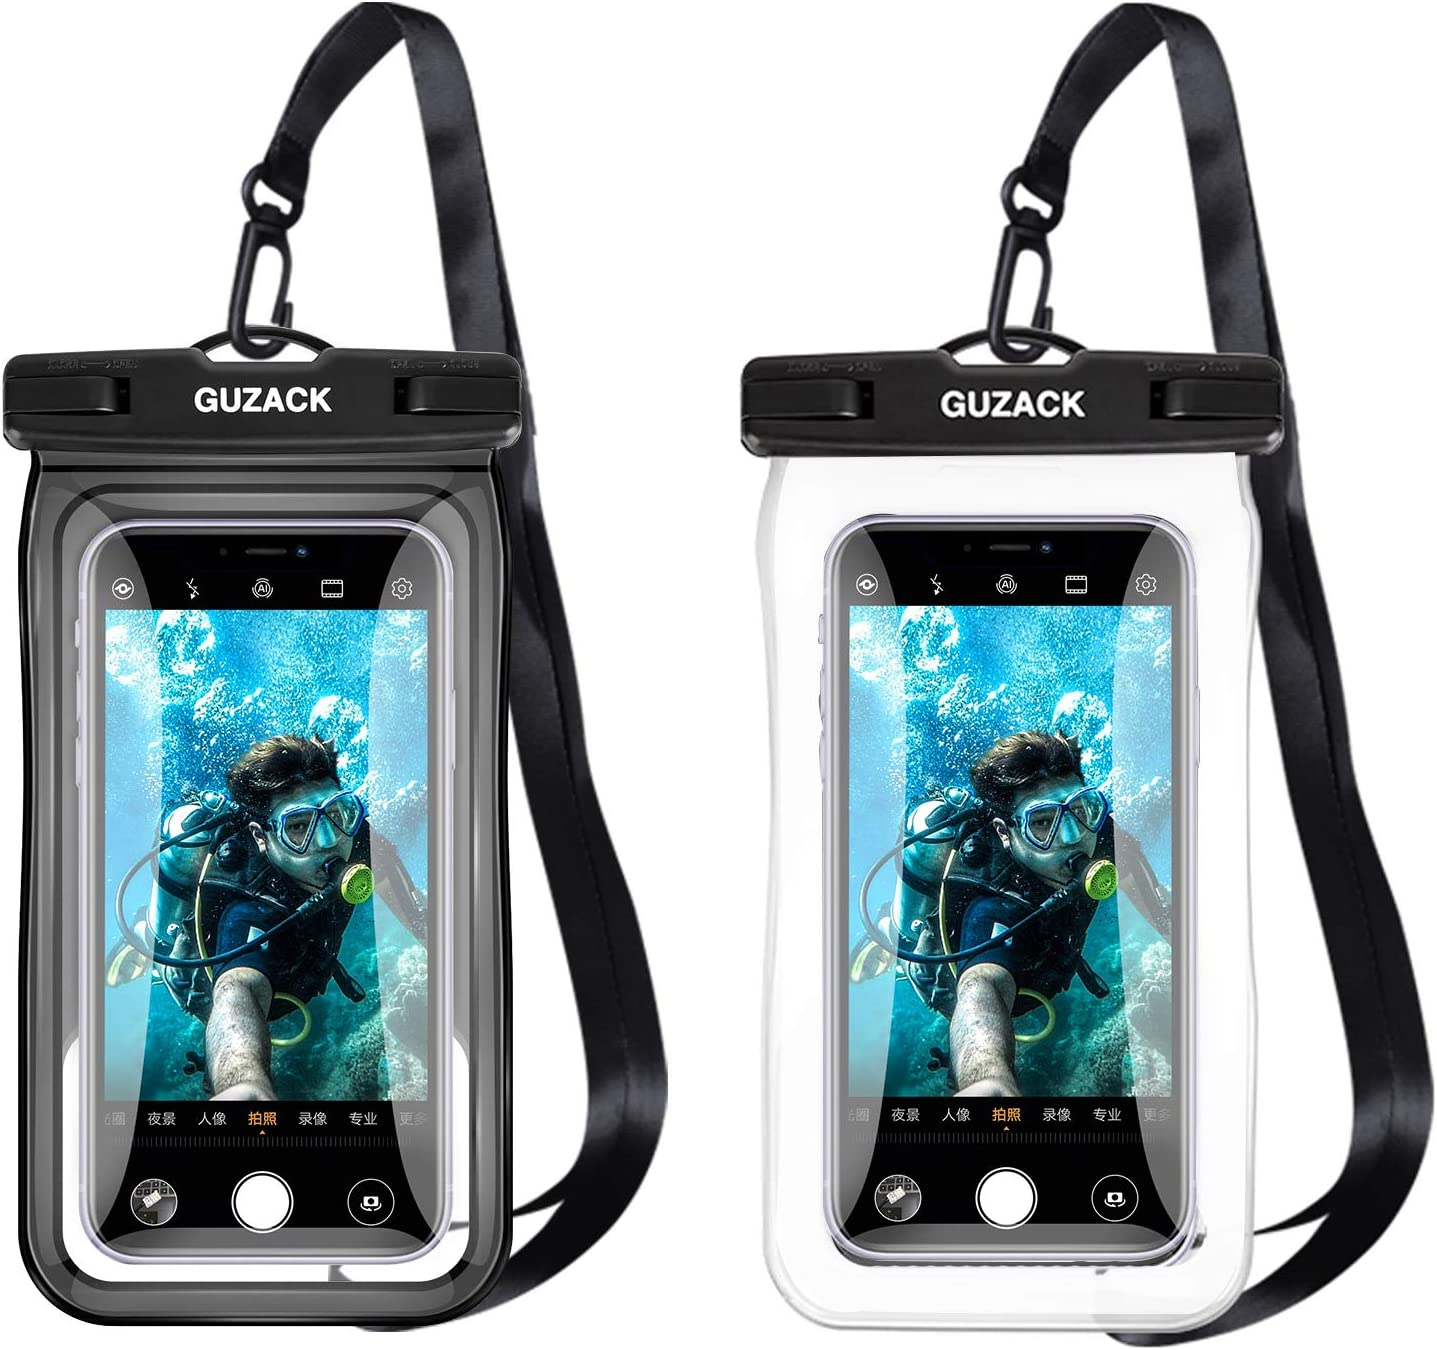 Waterproof Phone Pouch 2 Pack, Universal Cell Phone Waterproof Case for iPhone 12 11 Pro Max X 8 7 Plus, Samsung S21 S20 S10 and More Up to 6.9'' Underwater Dry Bag for Swim Kayak Snorkel Travel